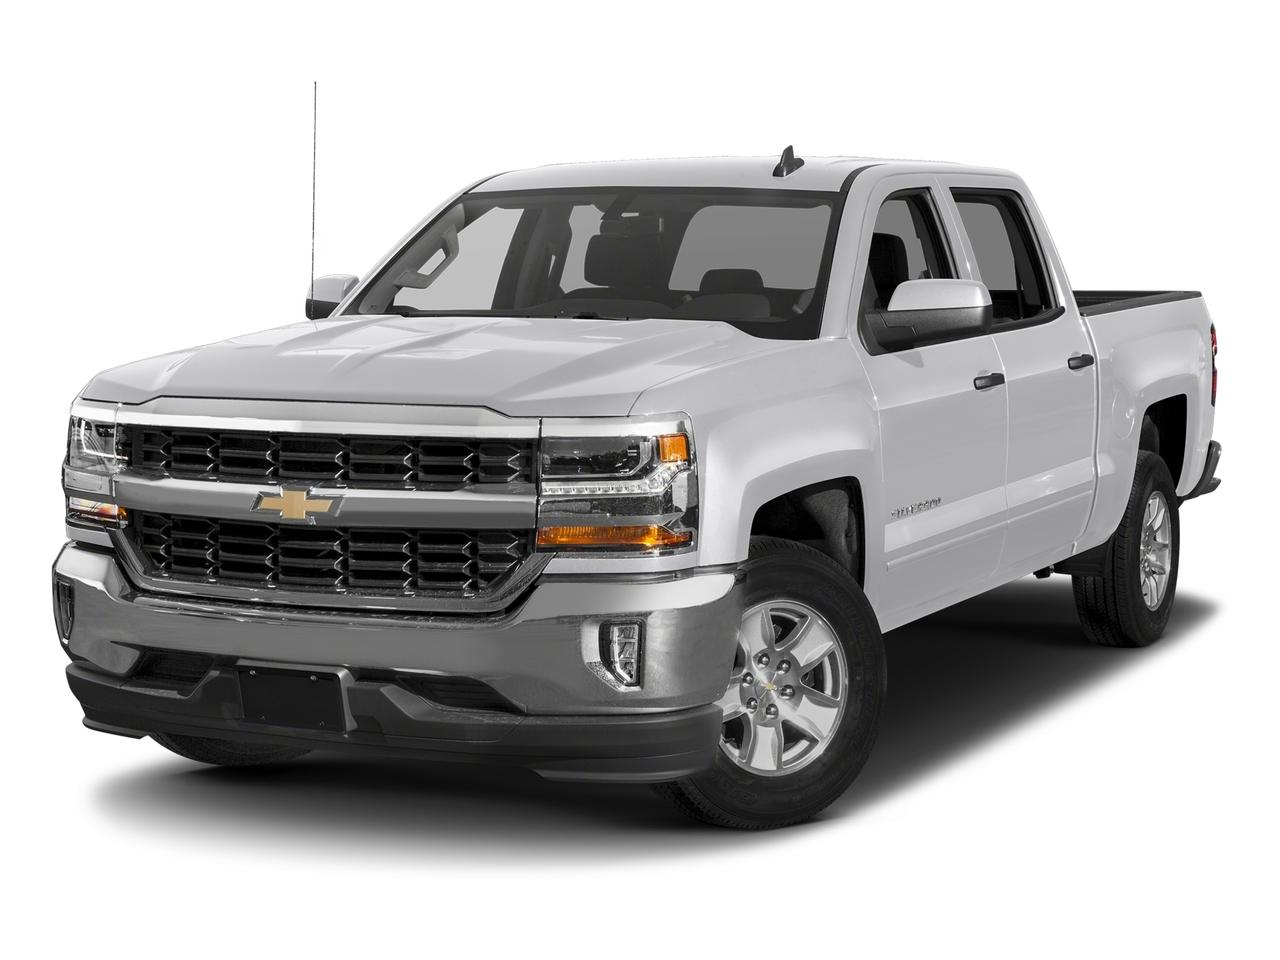 2017 Chevrolet Silverado 1500 Vehicle Photo in Redwood Falls, MN 56283